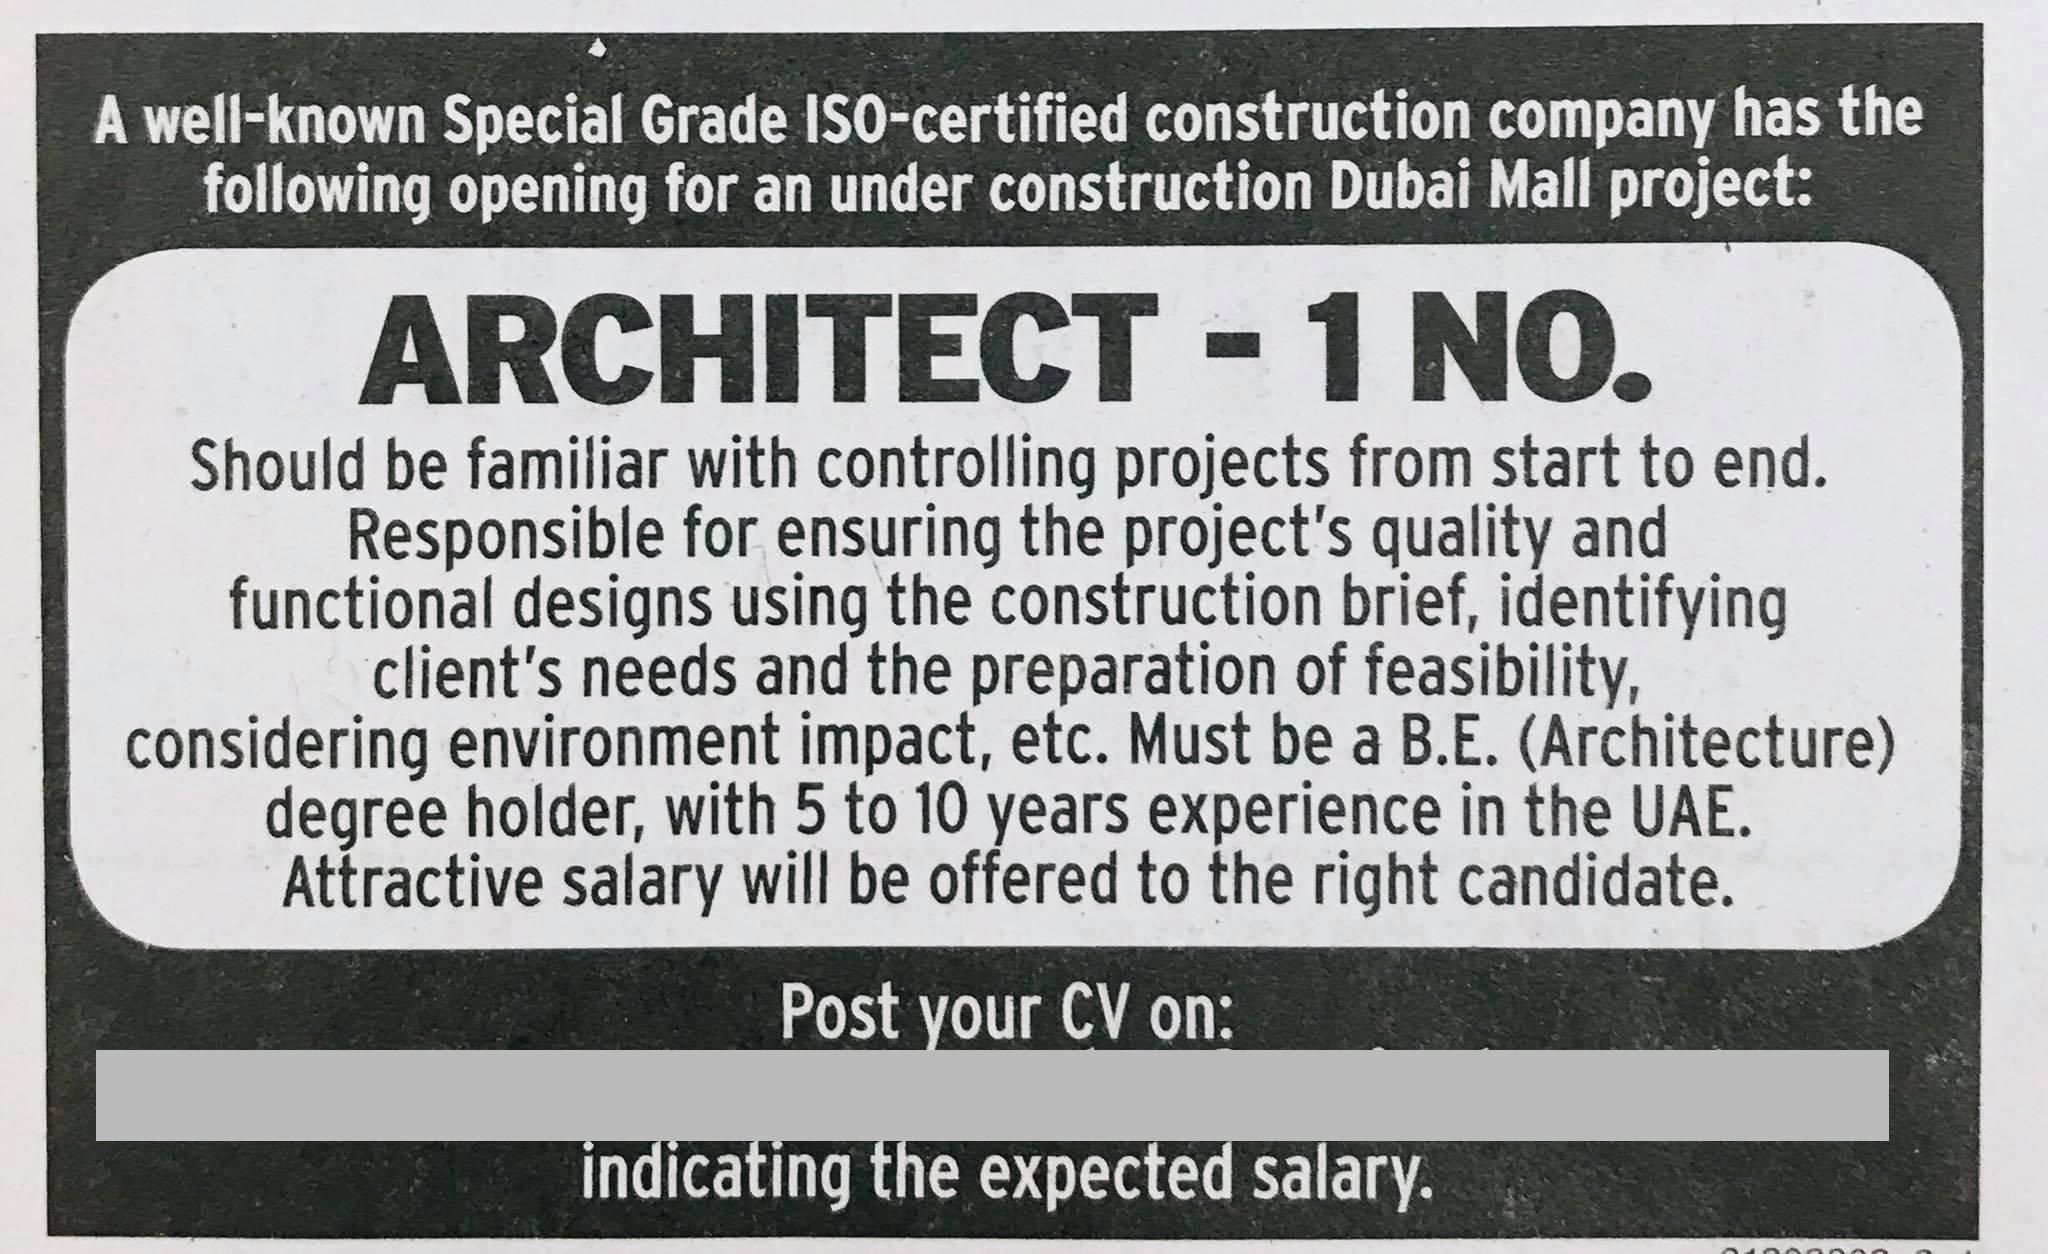 Architect for a Construction Company - Job Vacancy